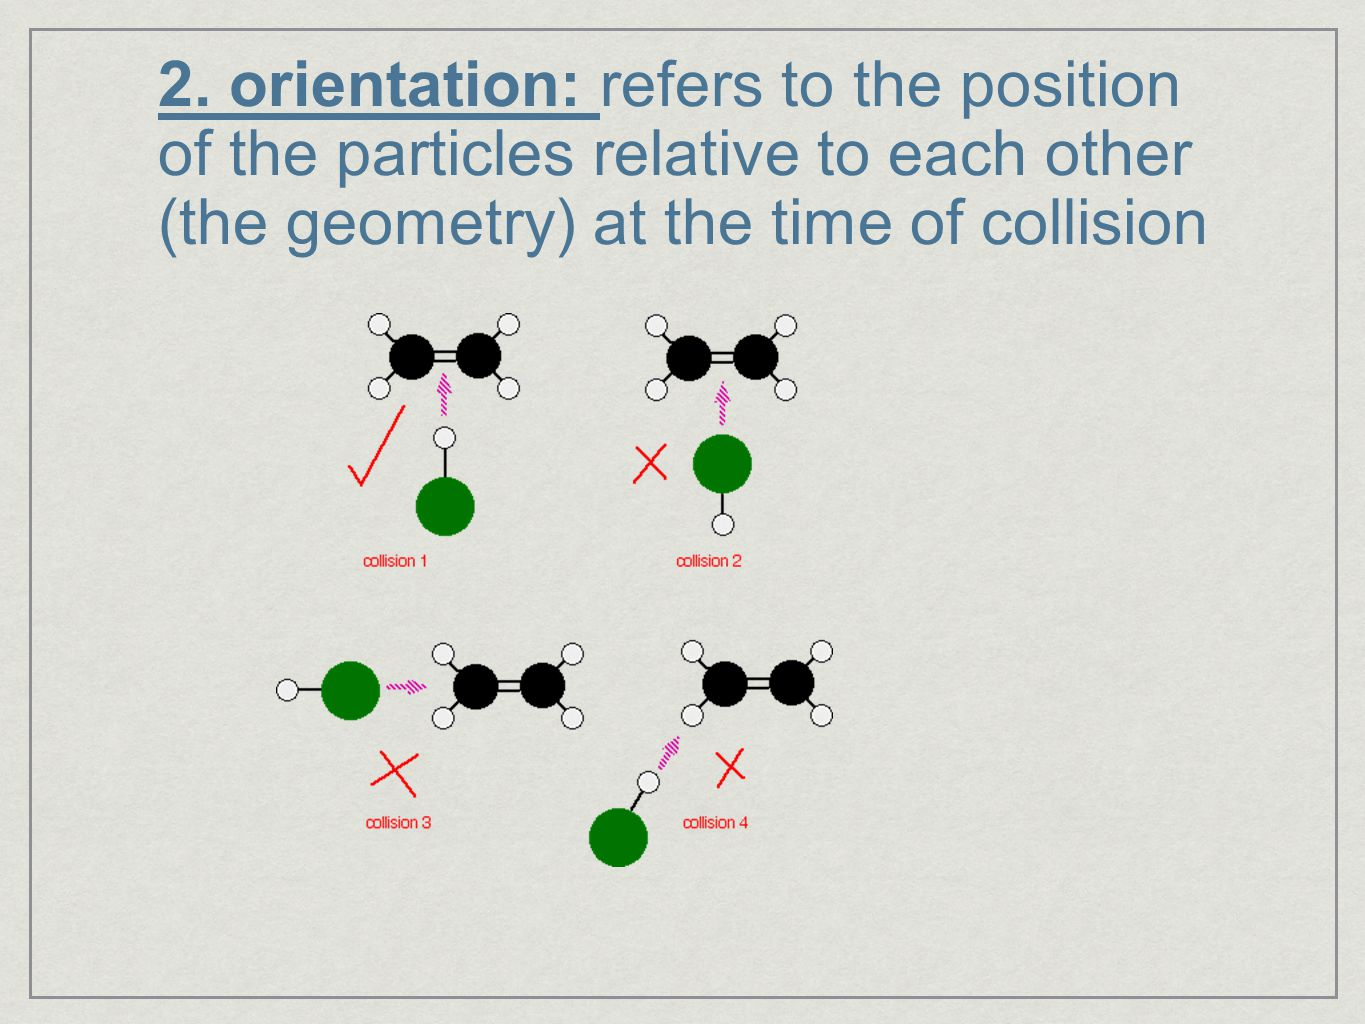 2. orientation: refers to the position of the particles relative to each other (the geometry) at the time of collision